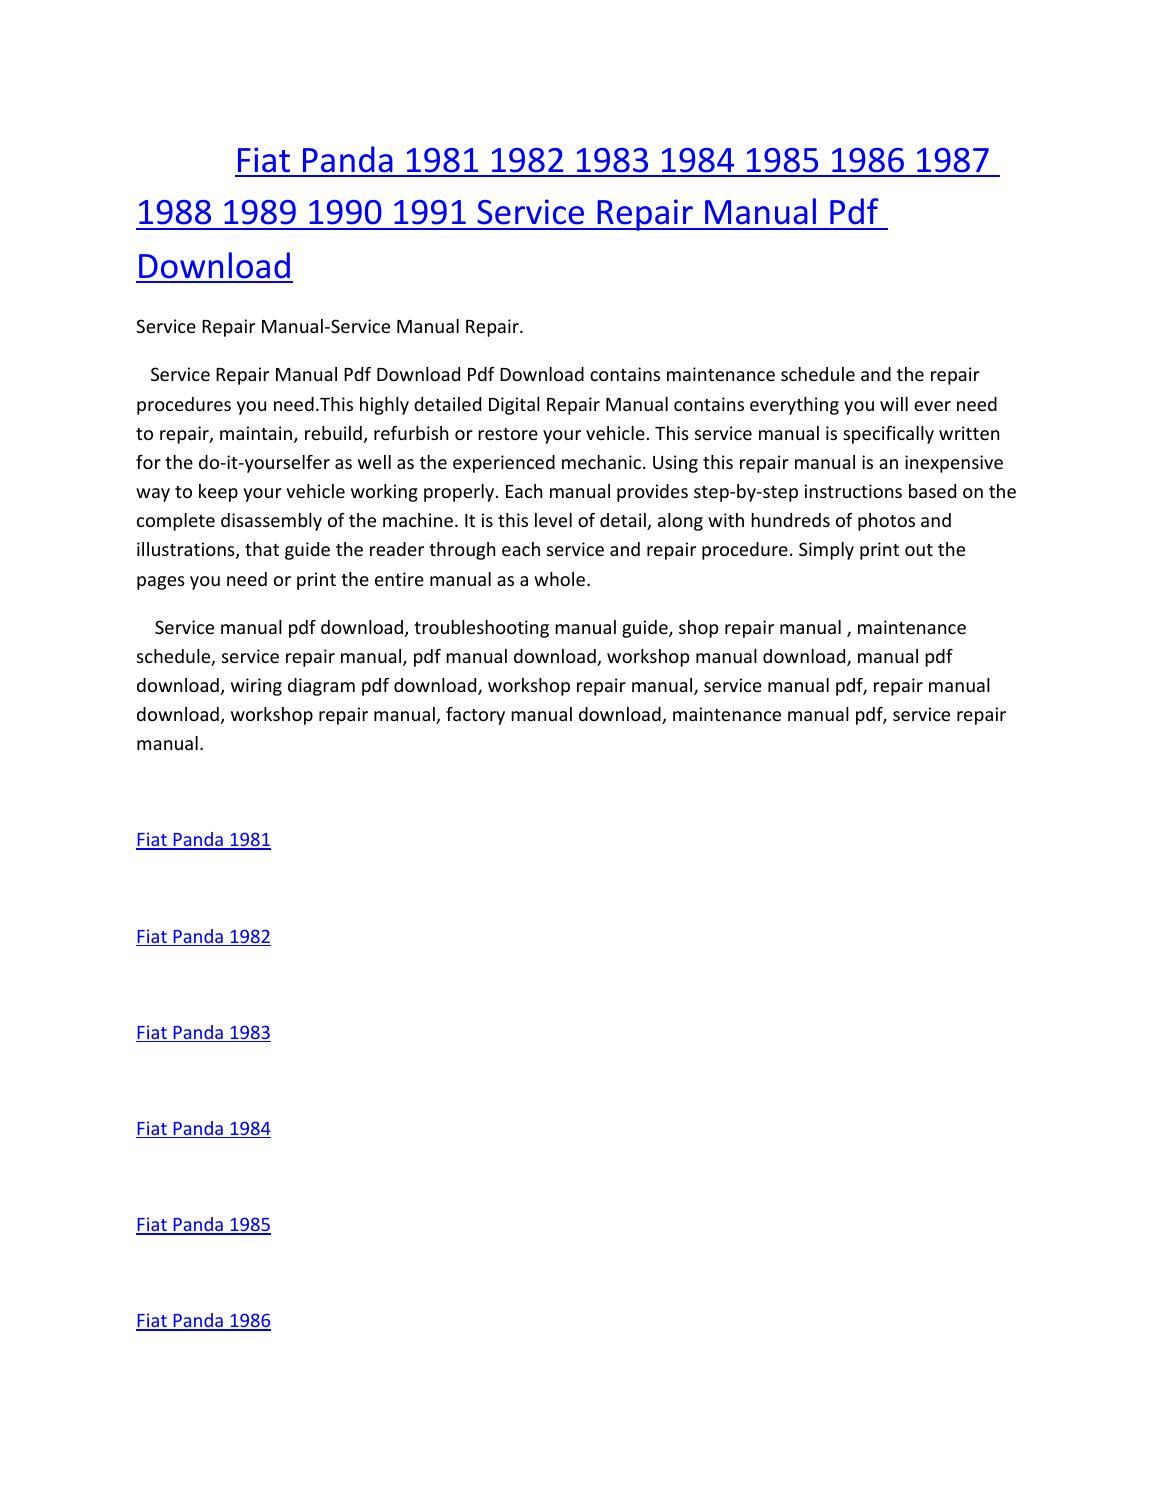 hight resolution of fiat panda 1981 1982 1983 1984 1985 1986 1987 1988 1989 1990 1991 service manual repair pdf download by amurgului issuu